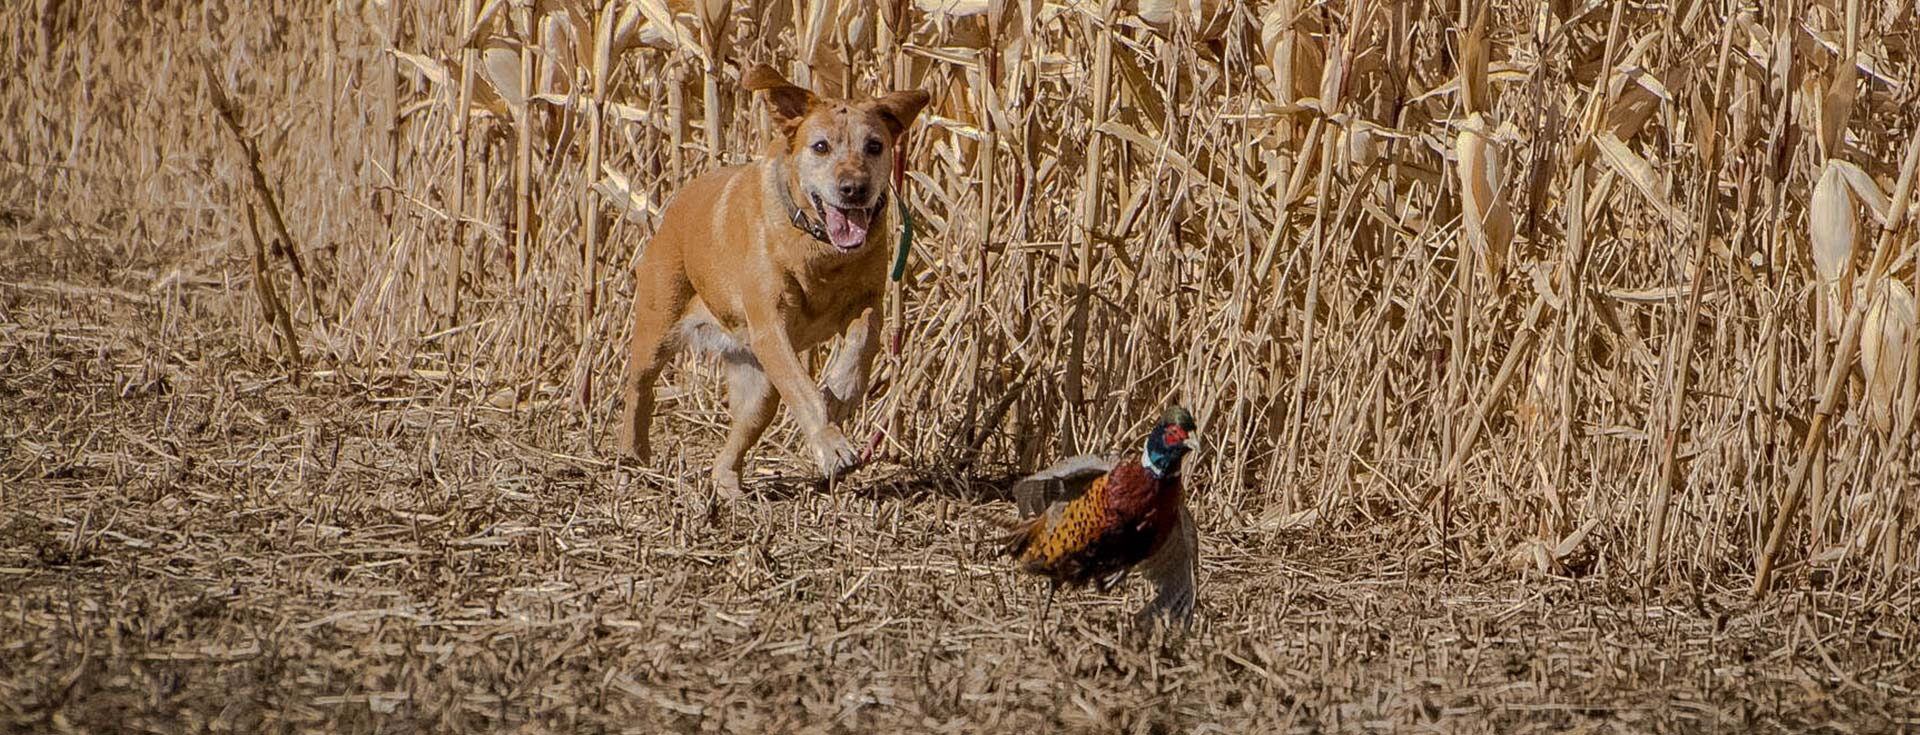 South Dakota Pheasant Hunting Lodges | Rieger Creek Lodge